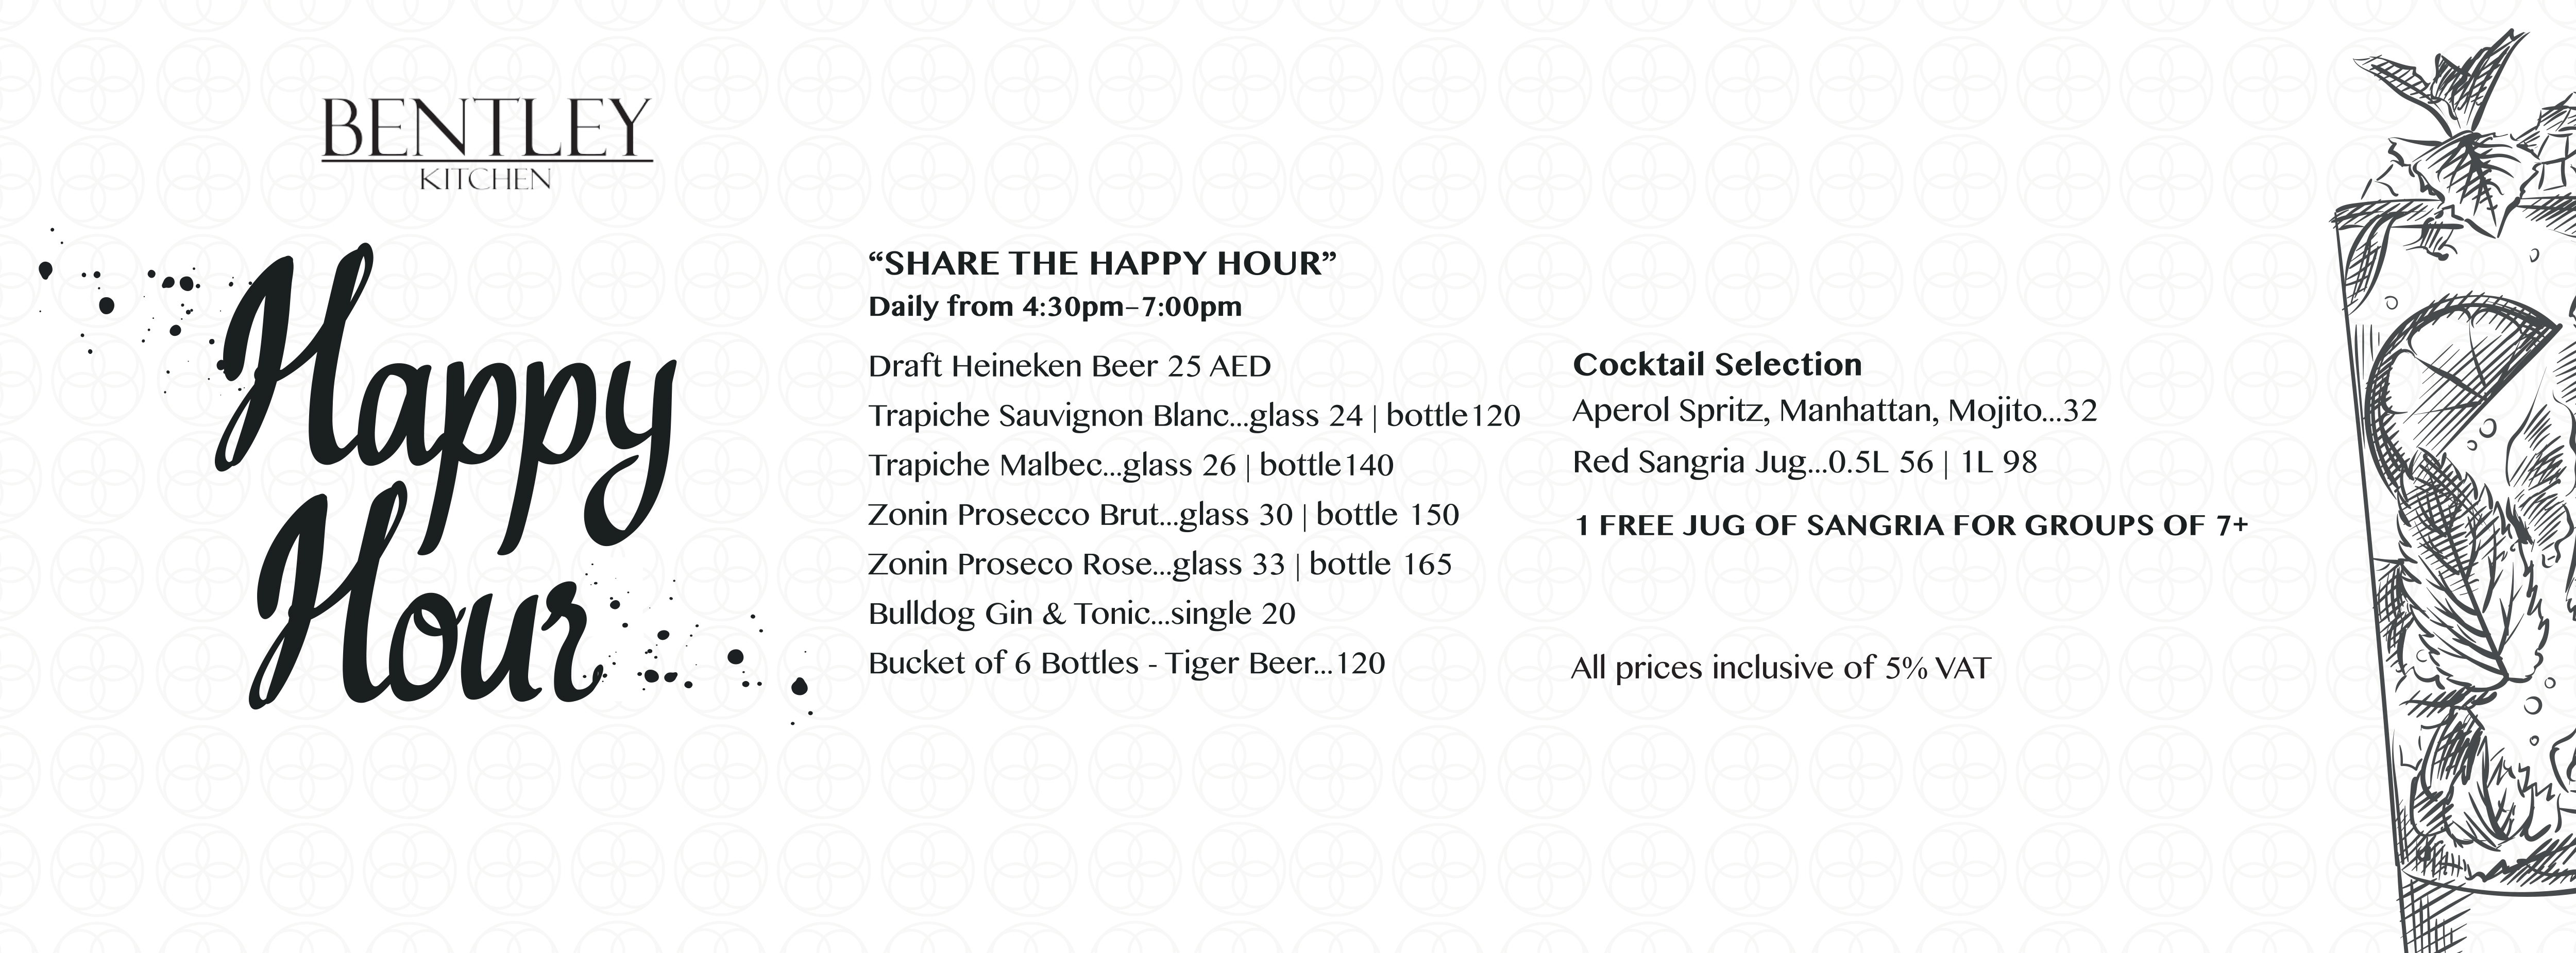 Happy Hour @ Bentley Kitchen | The Capital List